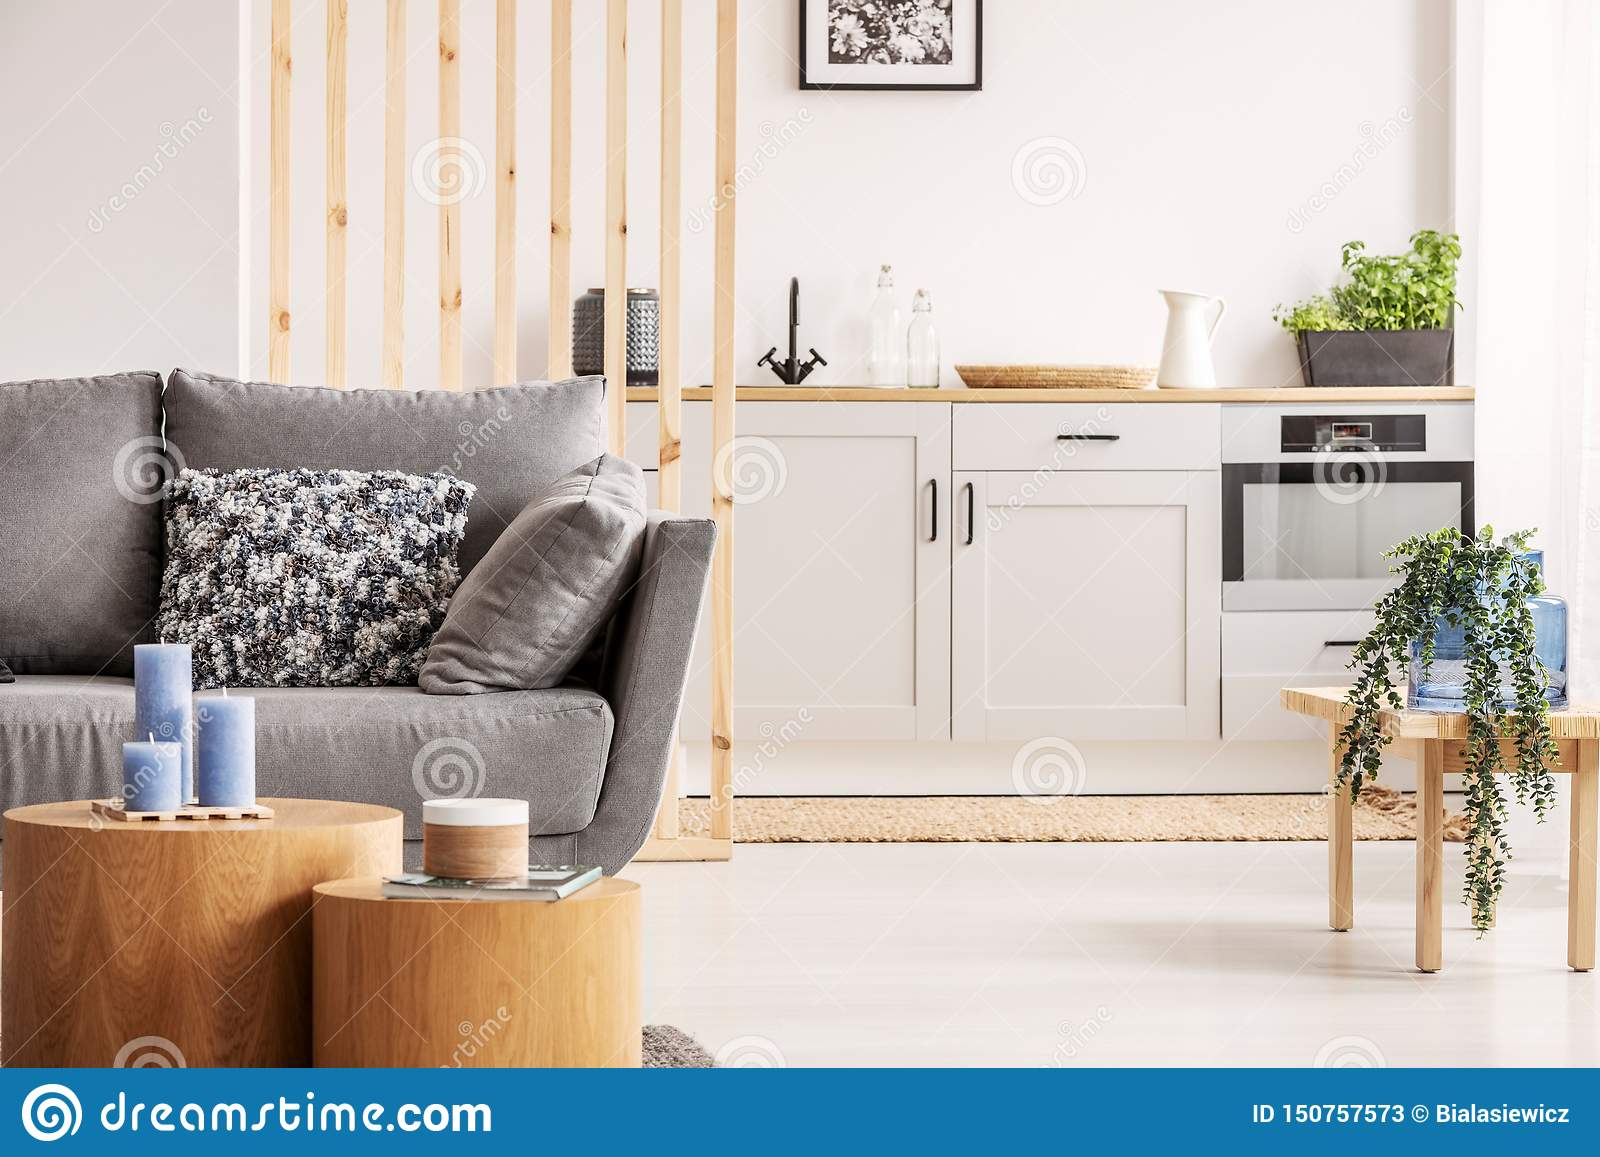 Open Plan Studio Apartment With Small White Kitchen And Living Room With Grey Couch And Wooden Coffee Table Stock Image Image Of Modern Design 150757573